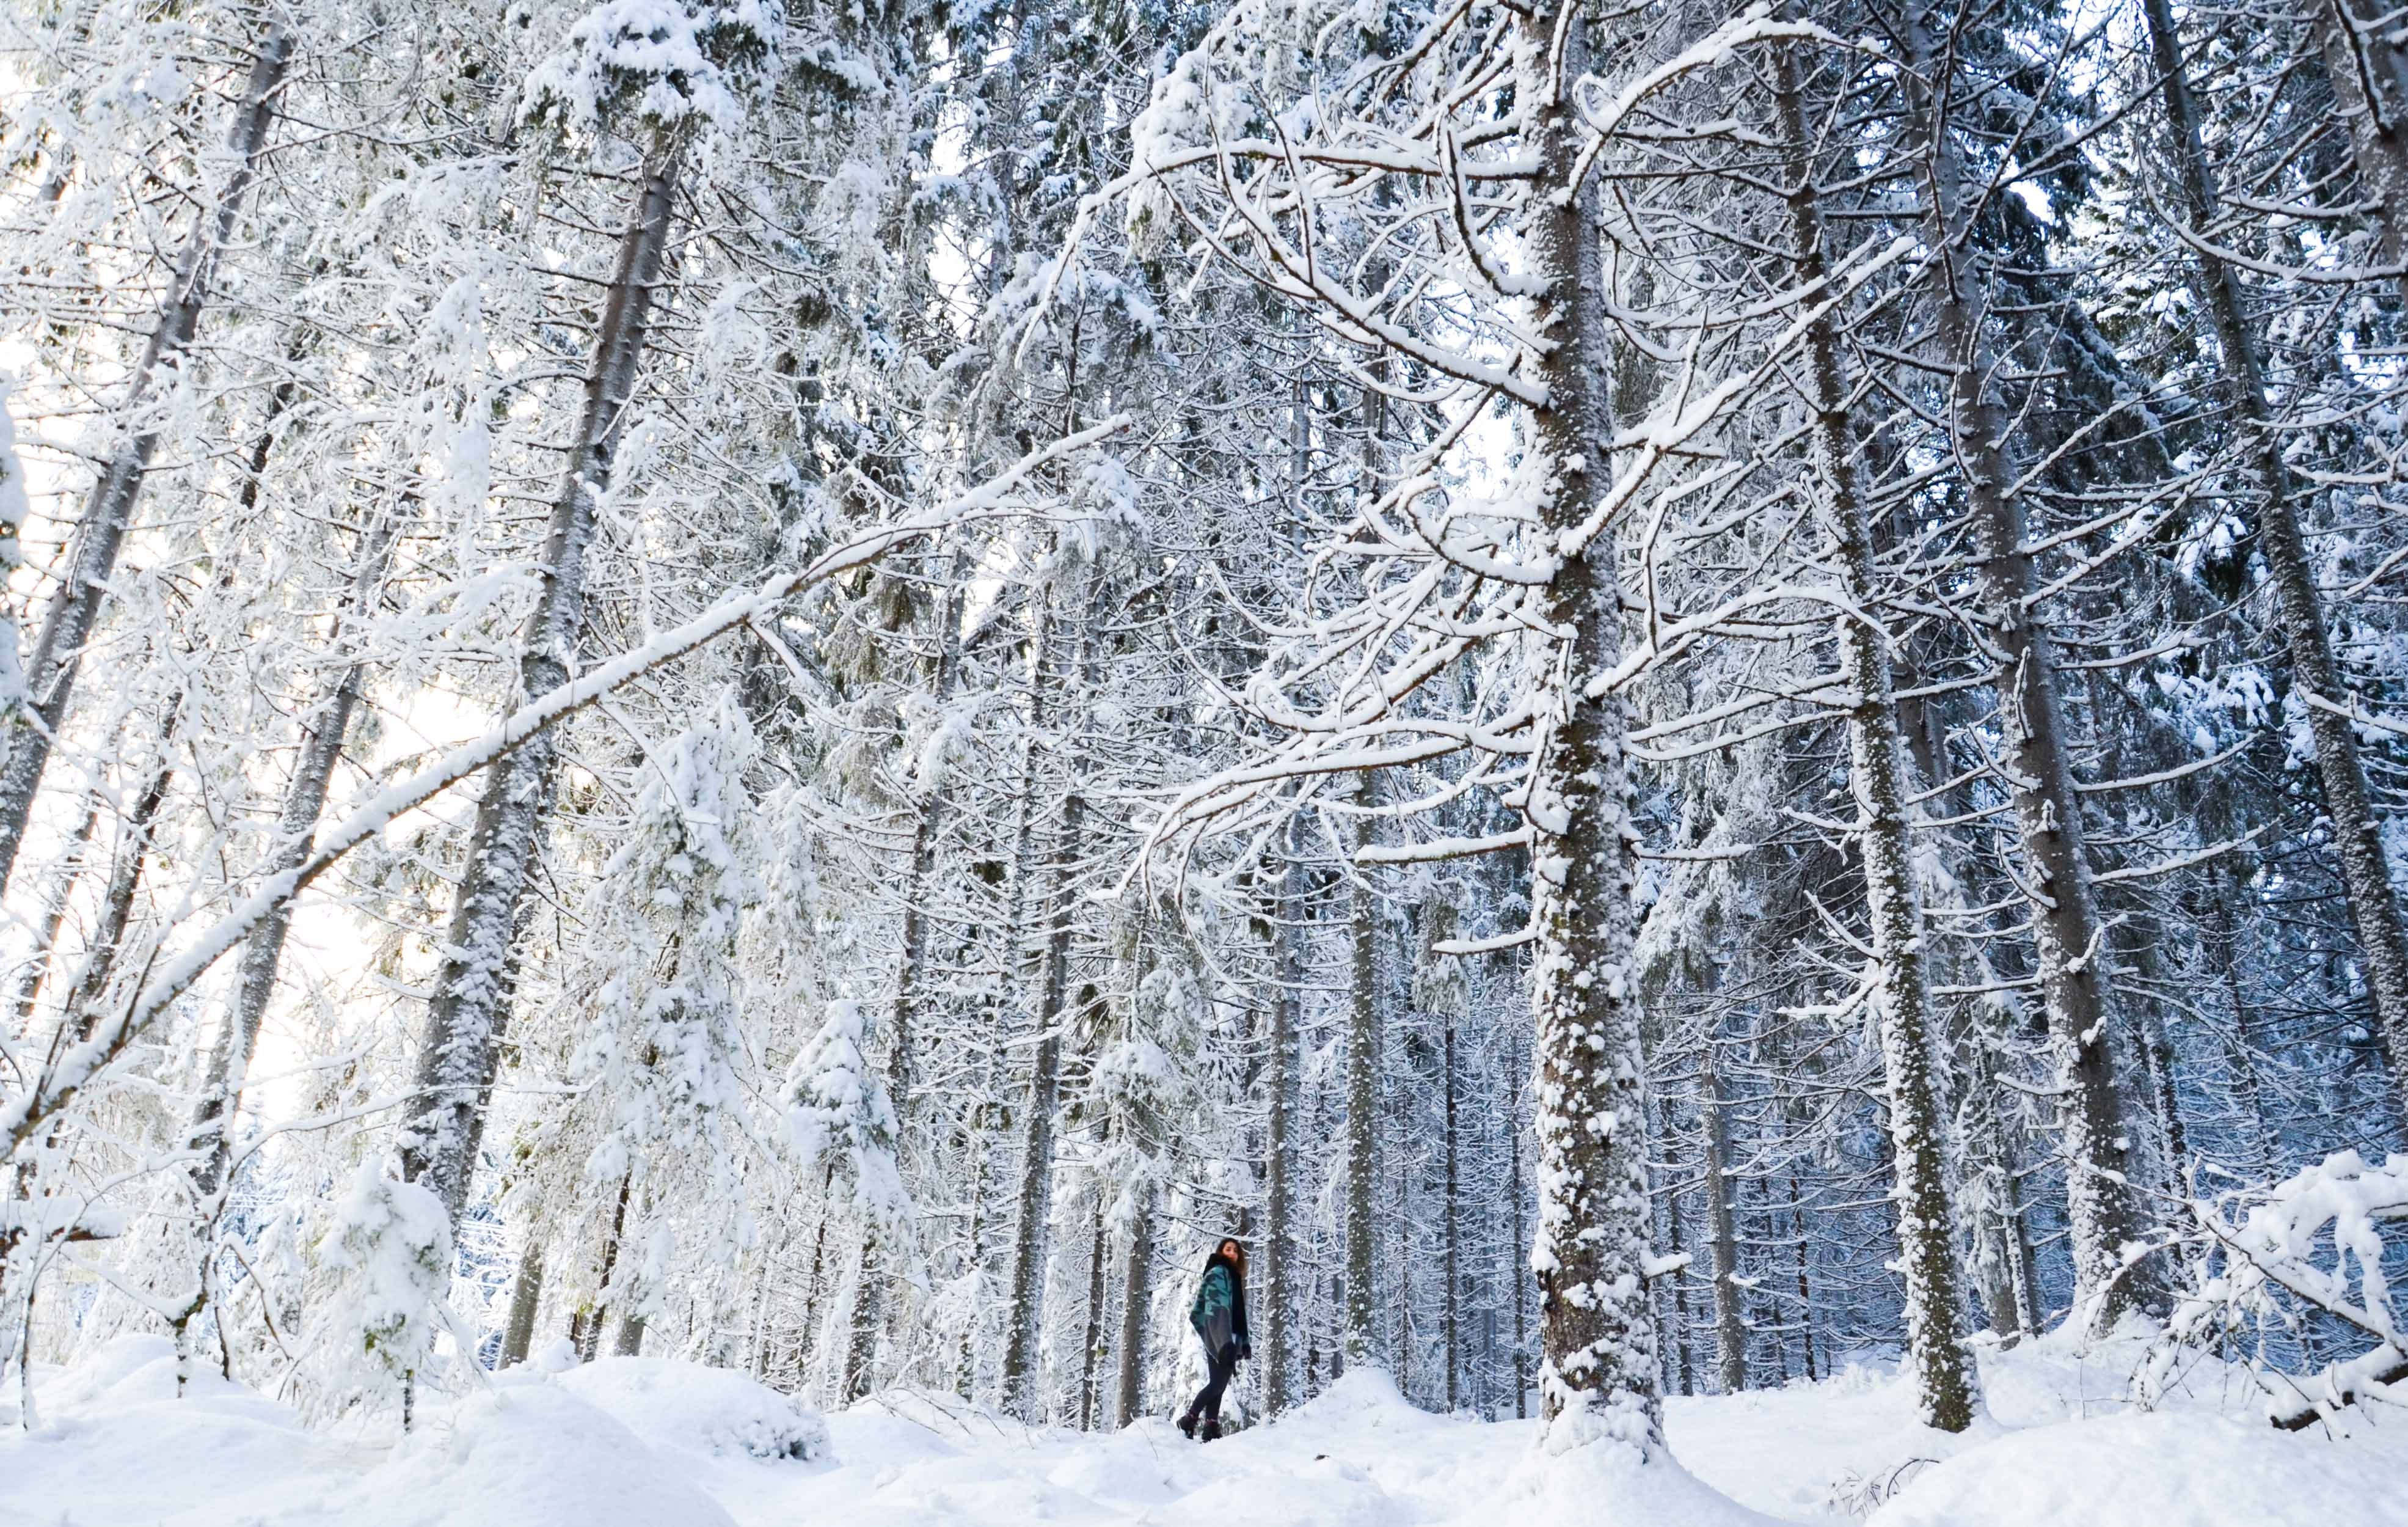 A shot from inside the woods of trees covered in snow in Jyväskylä